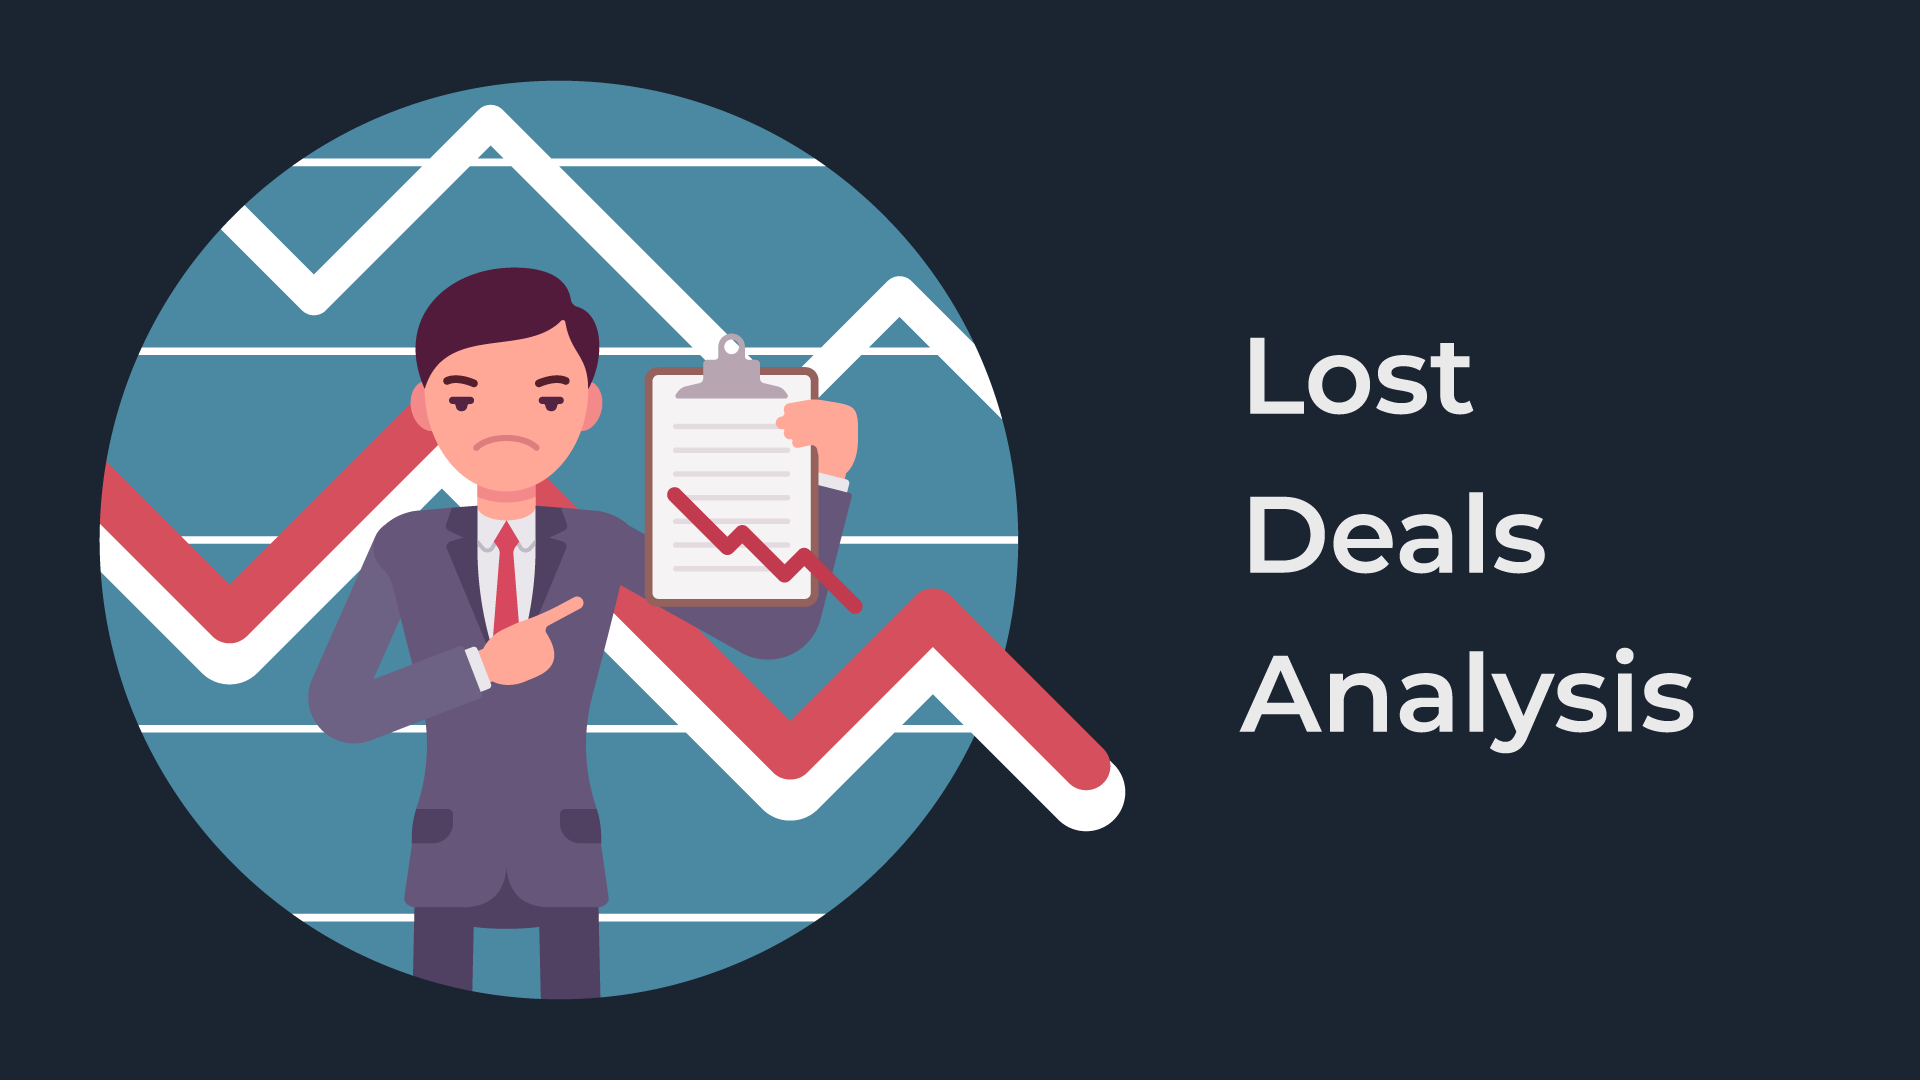 Lost Deals Analysis